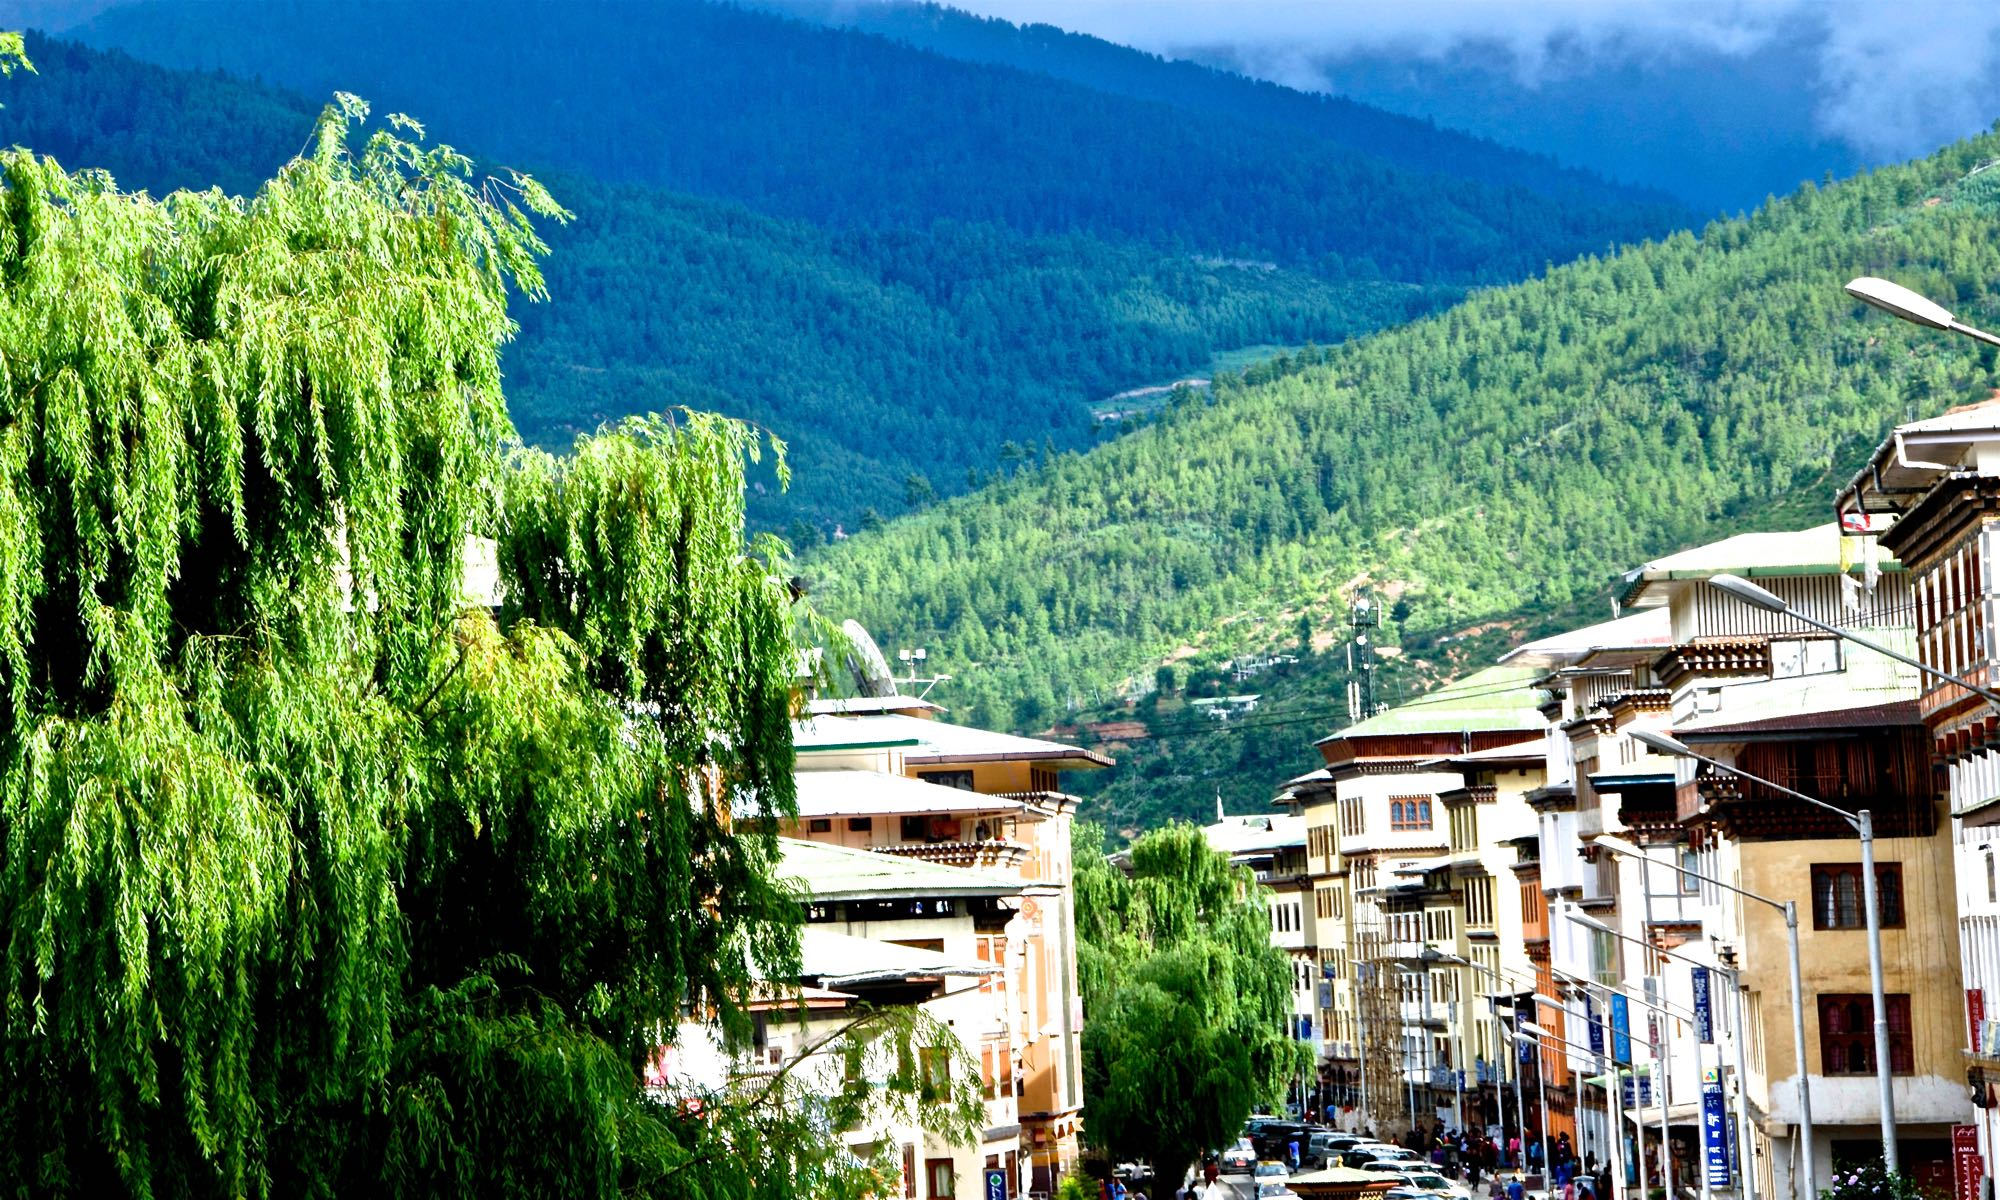 Capital city of Bhutan